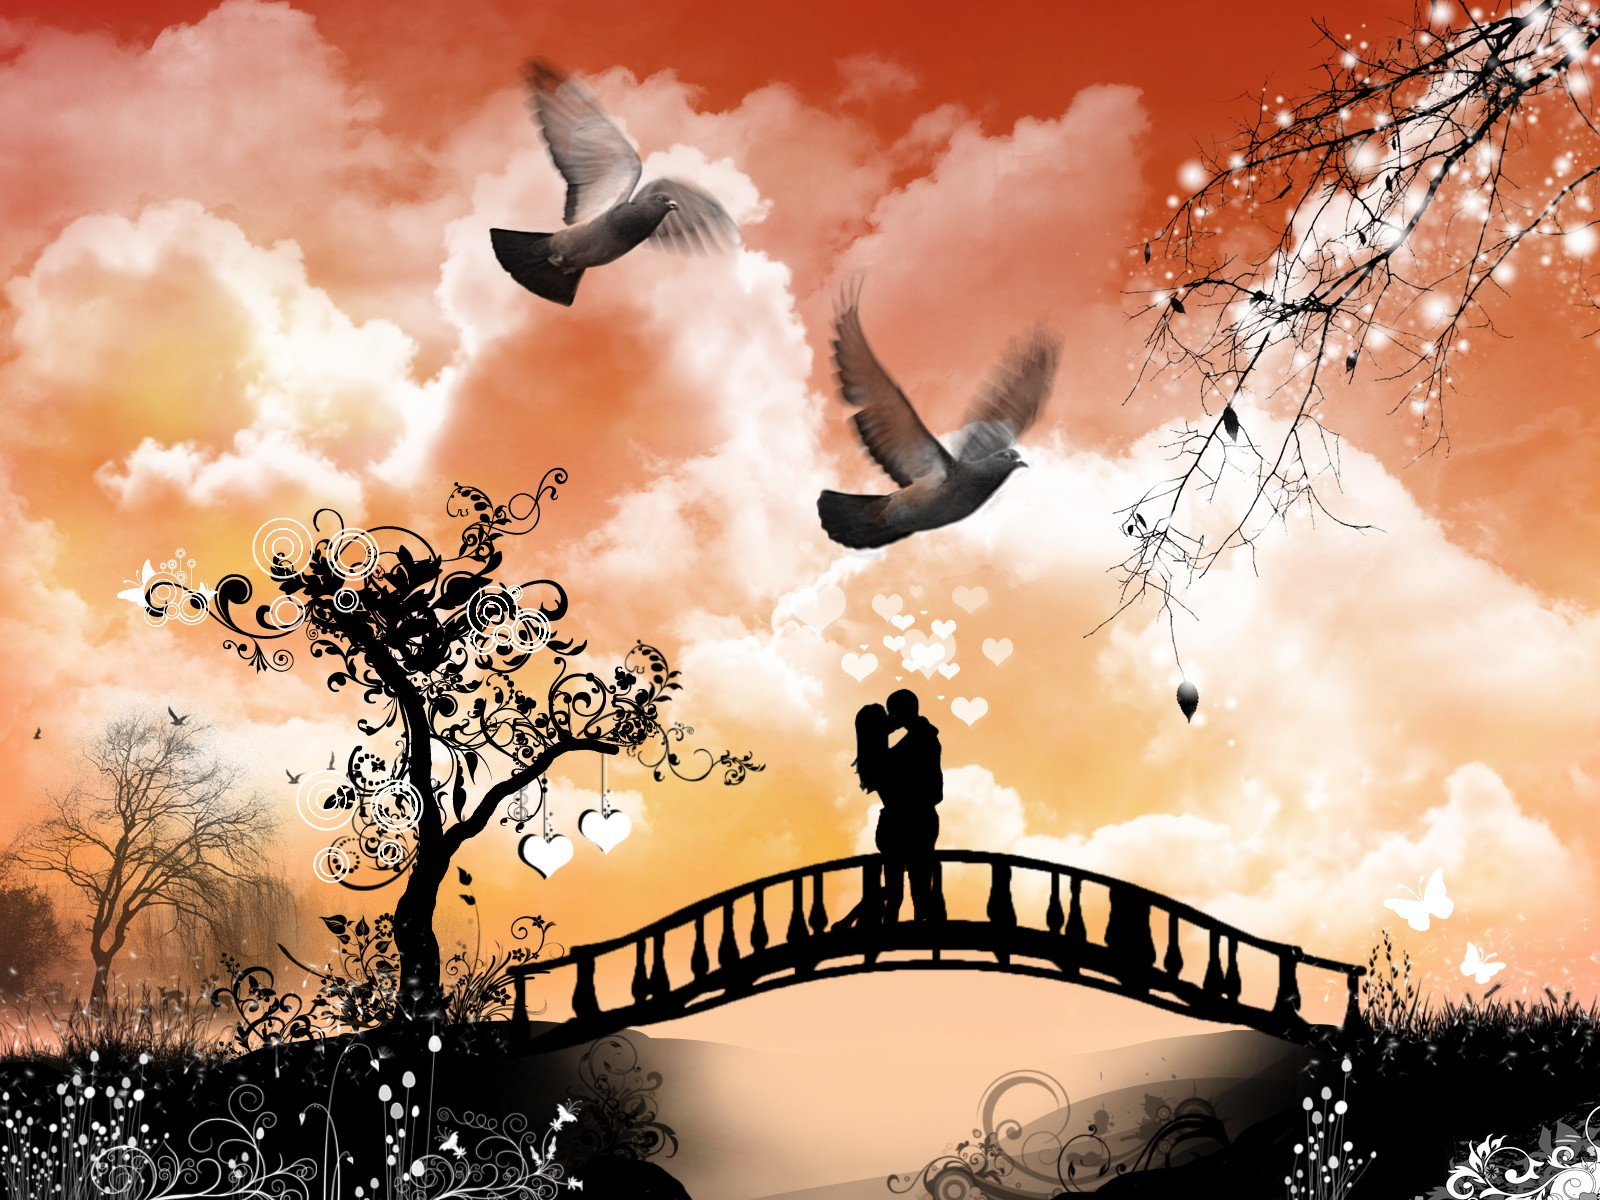 Romantic Love Wallpaper Images : Wallpaper collection Romantic Love couple kissing: Wallpaper Love Kiss